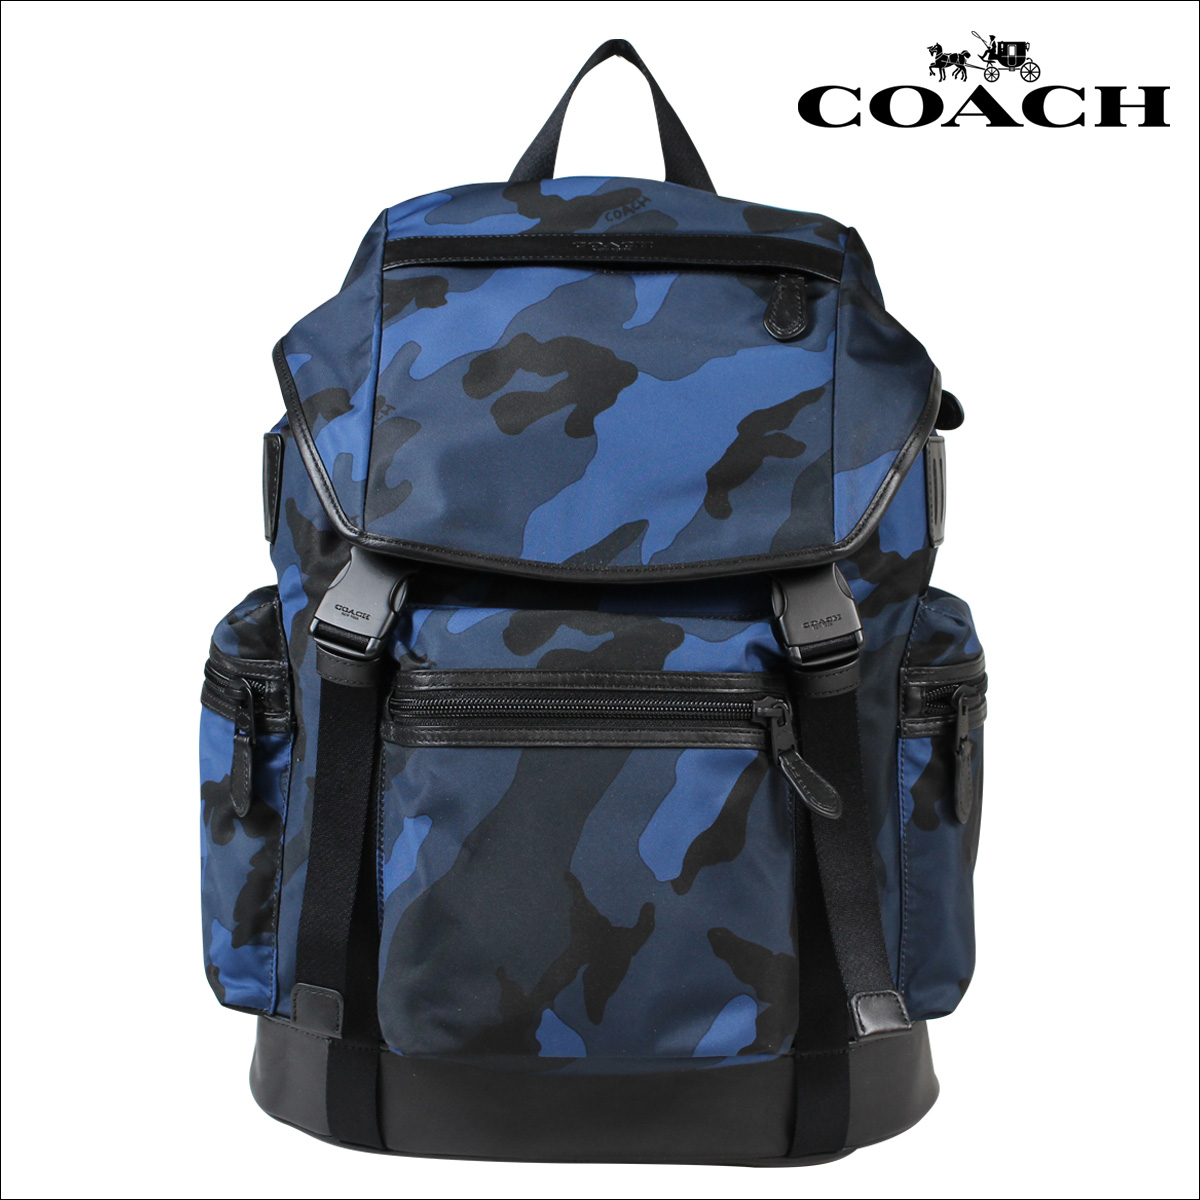 ALLSPORTS | Rakuten Global Market: [SOLD OUT] COACH coach mens bag ...